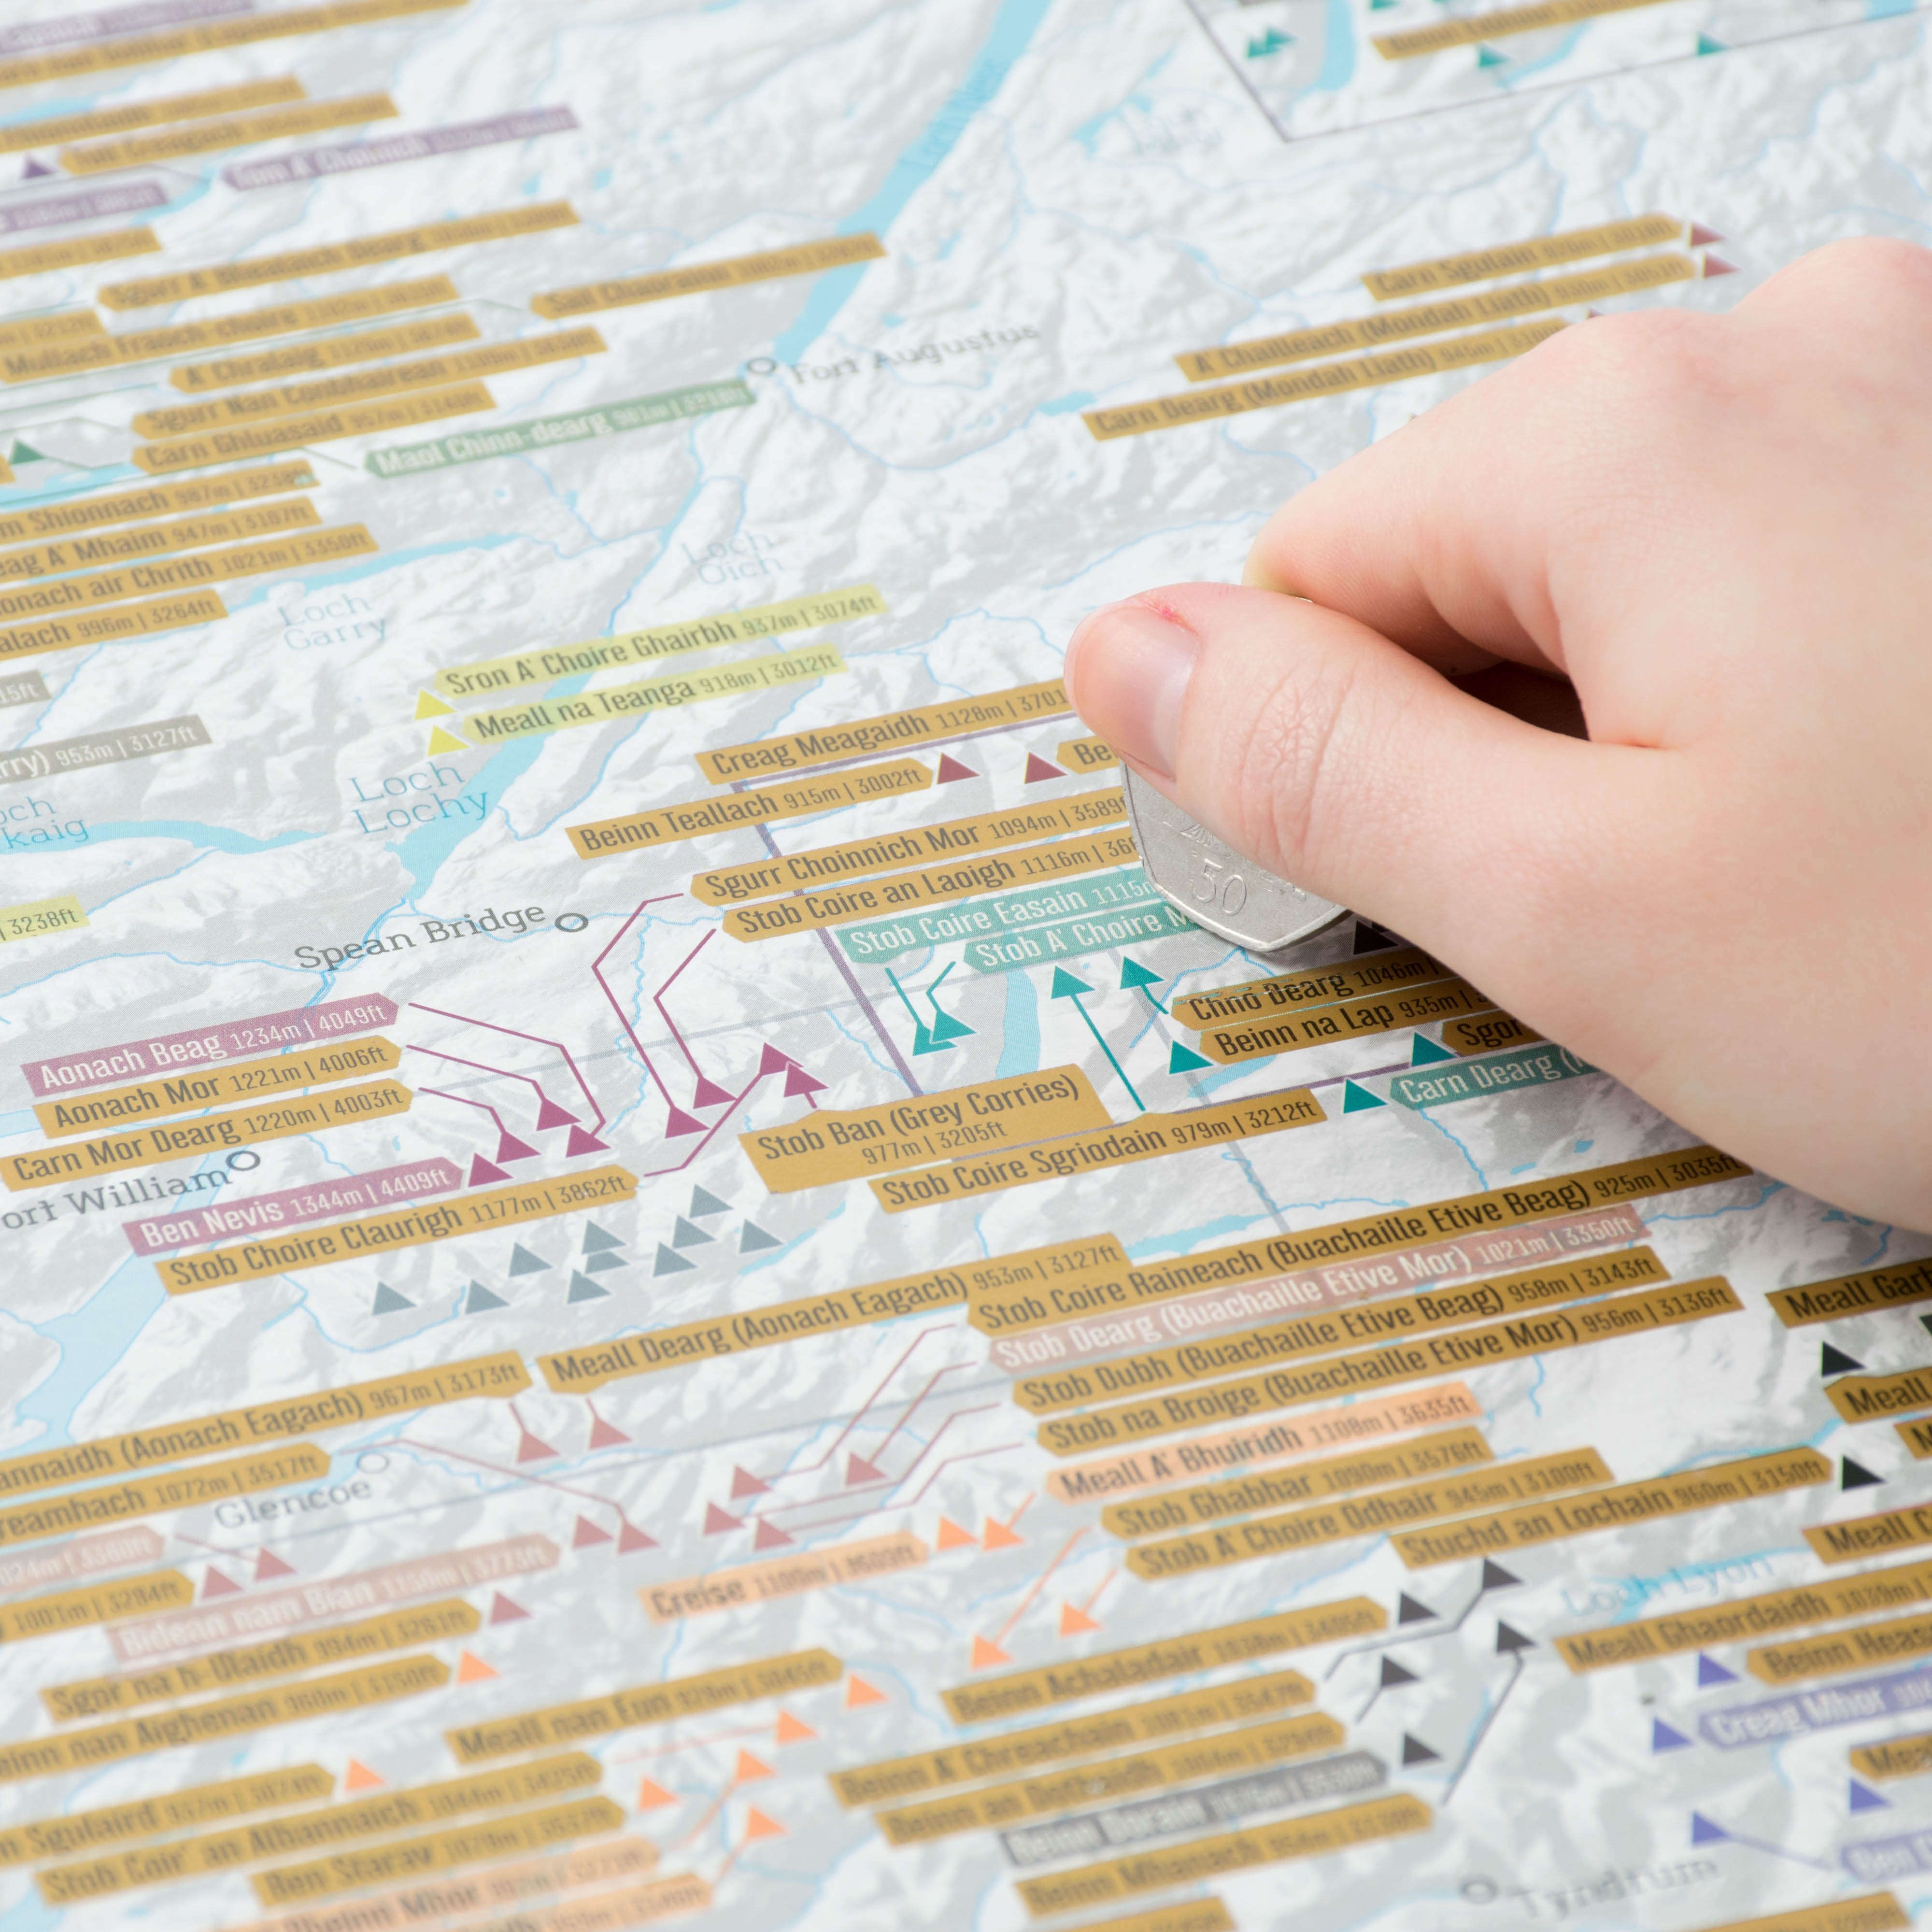 Scratch Off Munrobagging Print - Scratch off us state maps with pencil